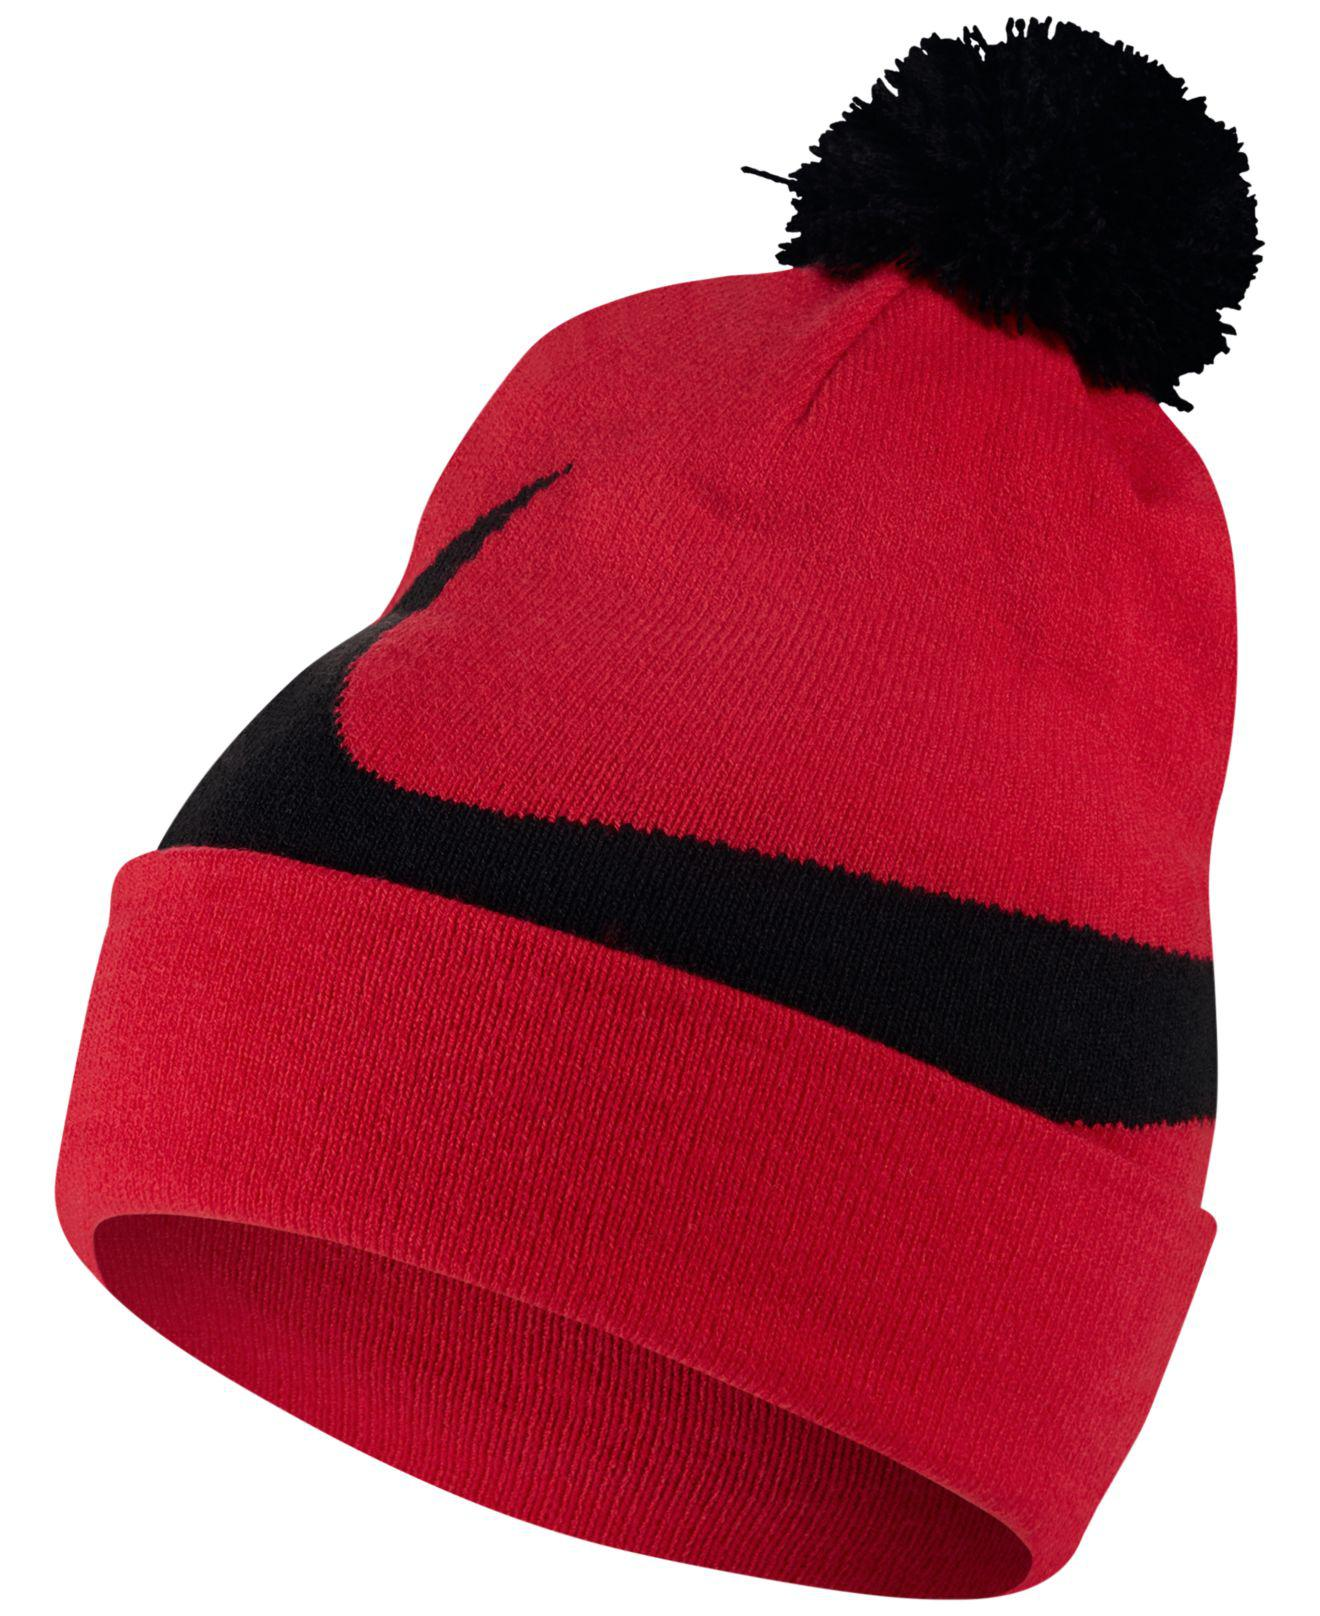 info for 4ebdd fc8f1 Lyst - Nike Men s Exploded Swoosh Pom Pom Beanie in Red for Men